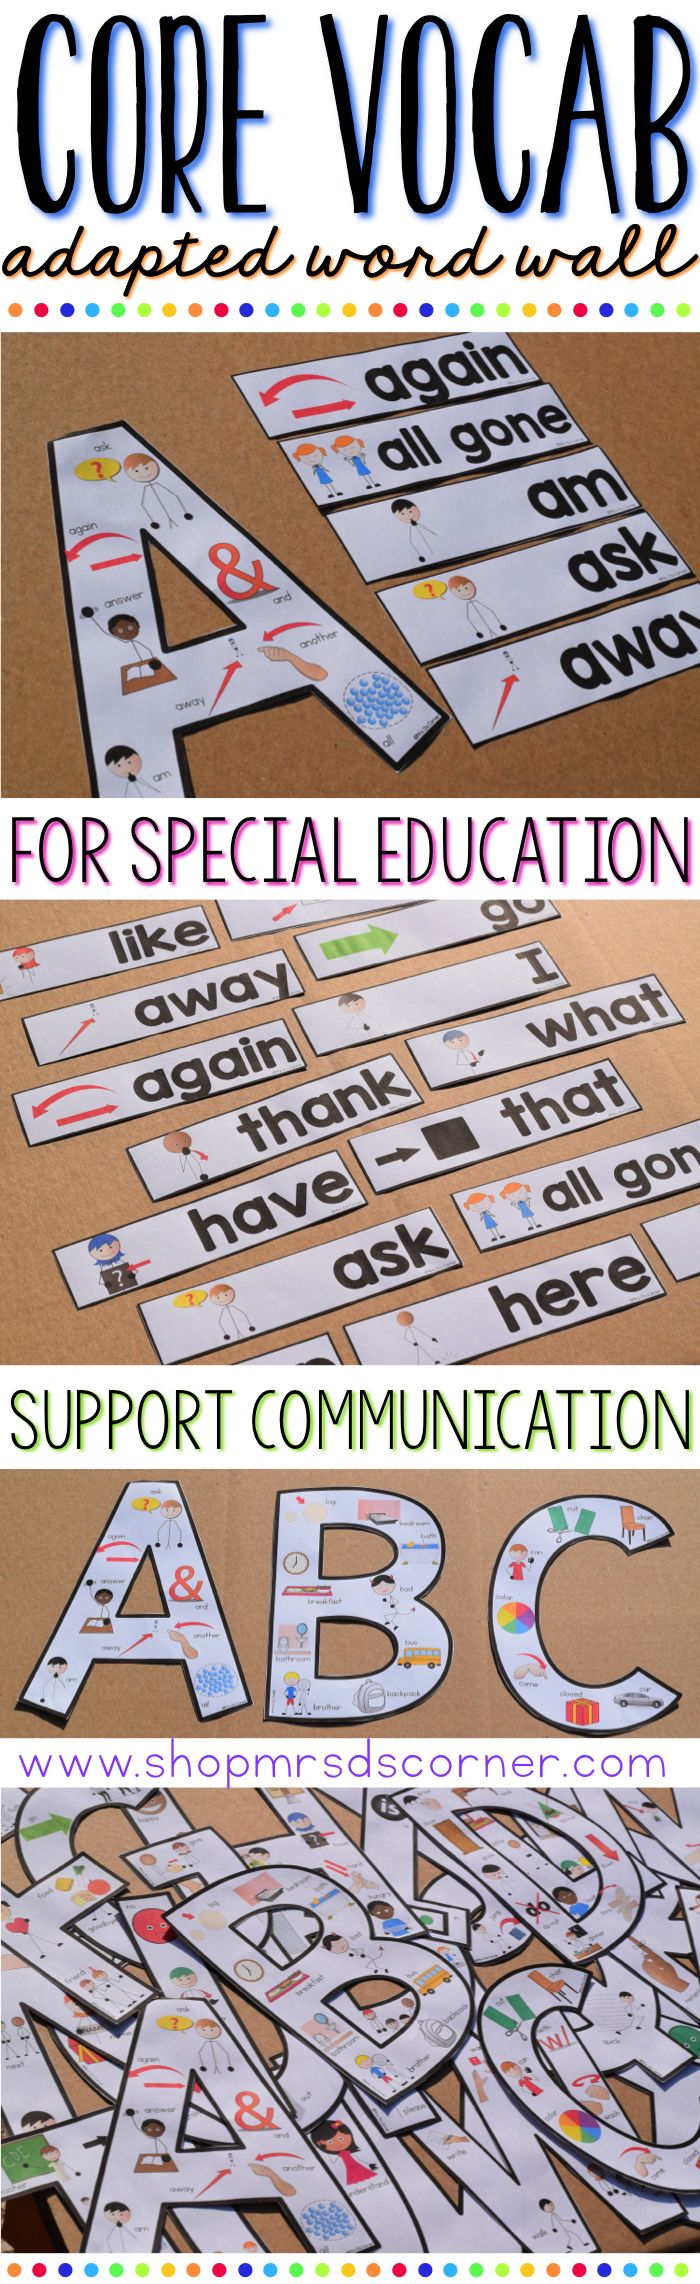 Support your students' communication needs by giving them a visual, core vocabulary word wall. Bring the traditional idea of a content word wall in to your special needs classroom with this Core Vocabulary Word Wall Starter Kit. Word Wall for Special Education. Only at Mrs. D's Corner.